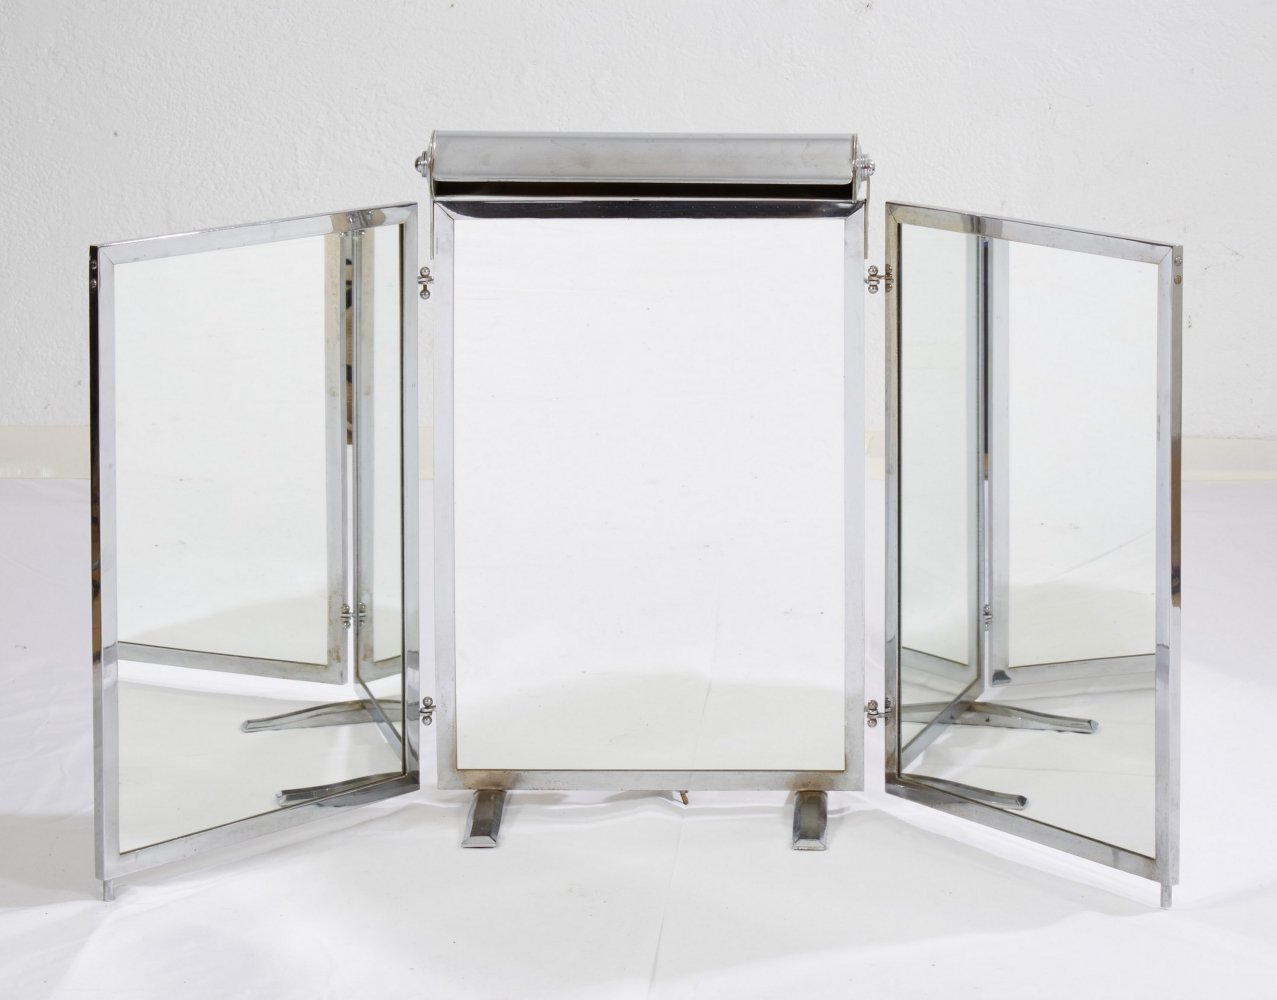 Modernist Mirror Triptype with integrated lamp, 1930s